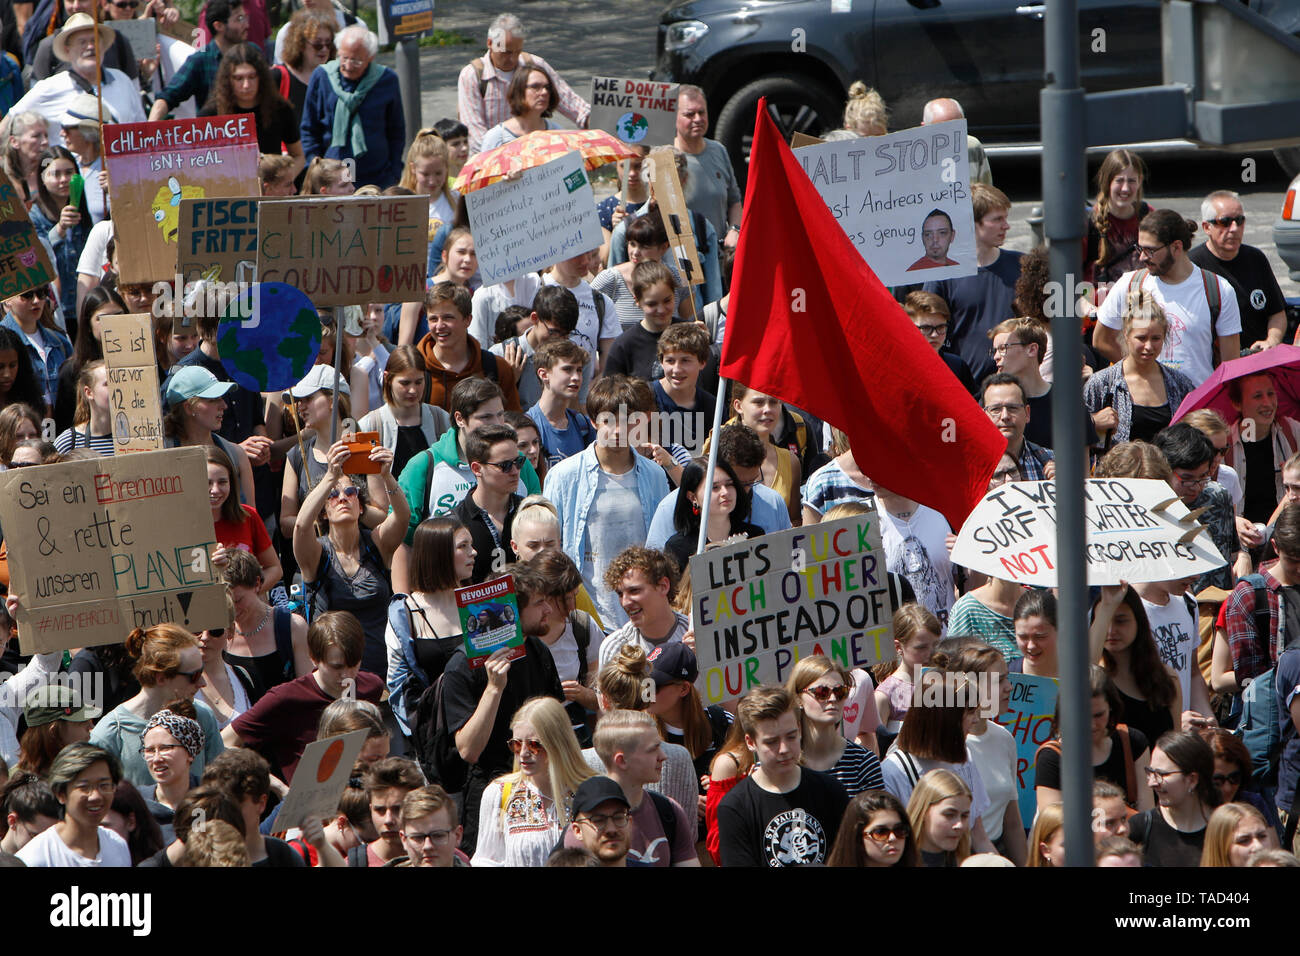 Frankfurt, Germany. 24th May 2019. The protesters march with self-made signs through Frankfurt city centre. Around 4,500 young people marched through Frankfurt to the European Central Bank, to protest against the climate change and for the introduction of measurements against it. The protest took place as part of an Europe wide climate strike, two days ahead of the 2019 European elections. - Stock Image